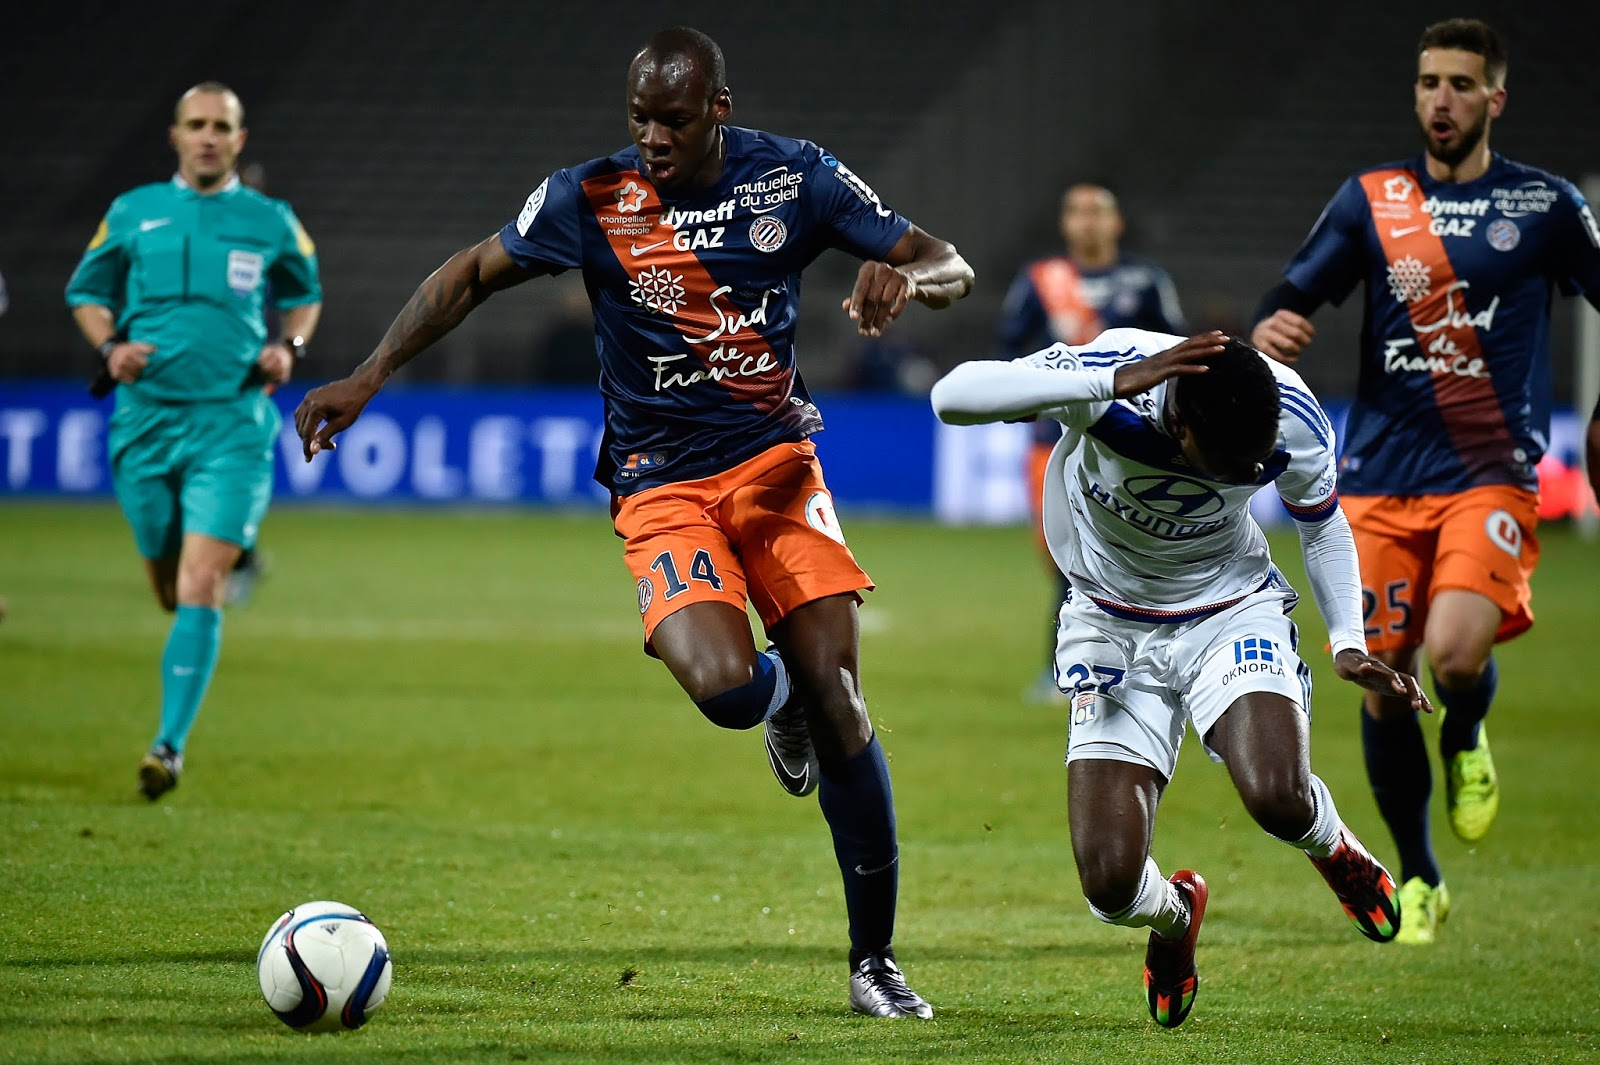 pronostics ligue 1 journ e 33 montpellier lyon 08 04 2016 who 39 s the bet. Black Bedroom Furniture Sets. Home Design Ideas